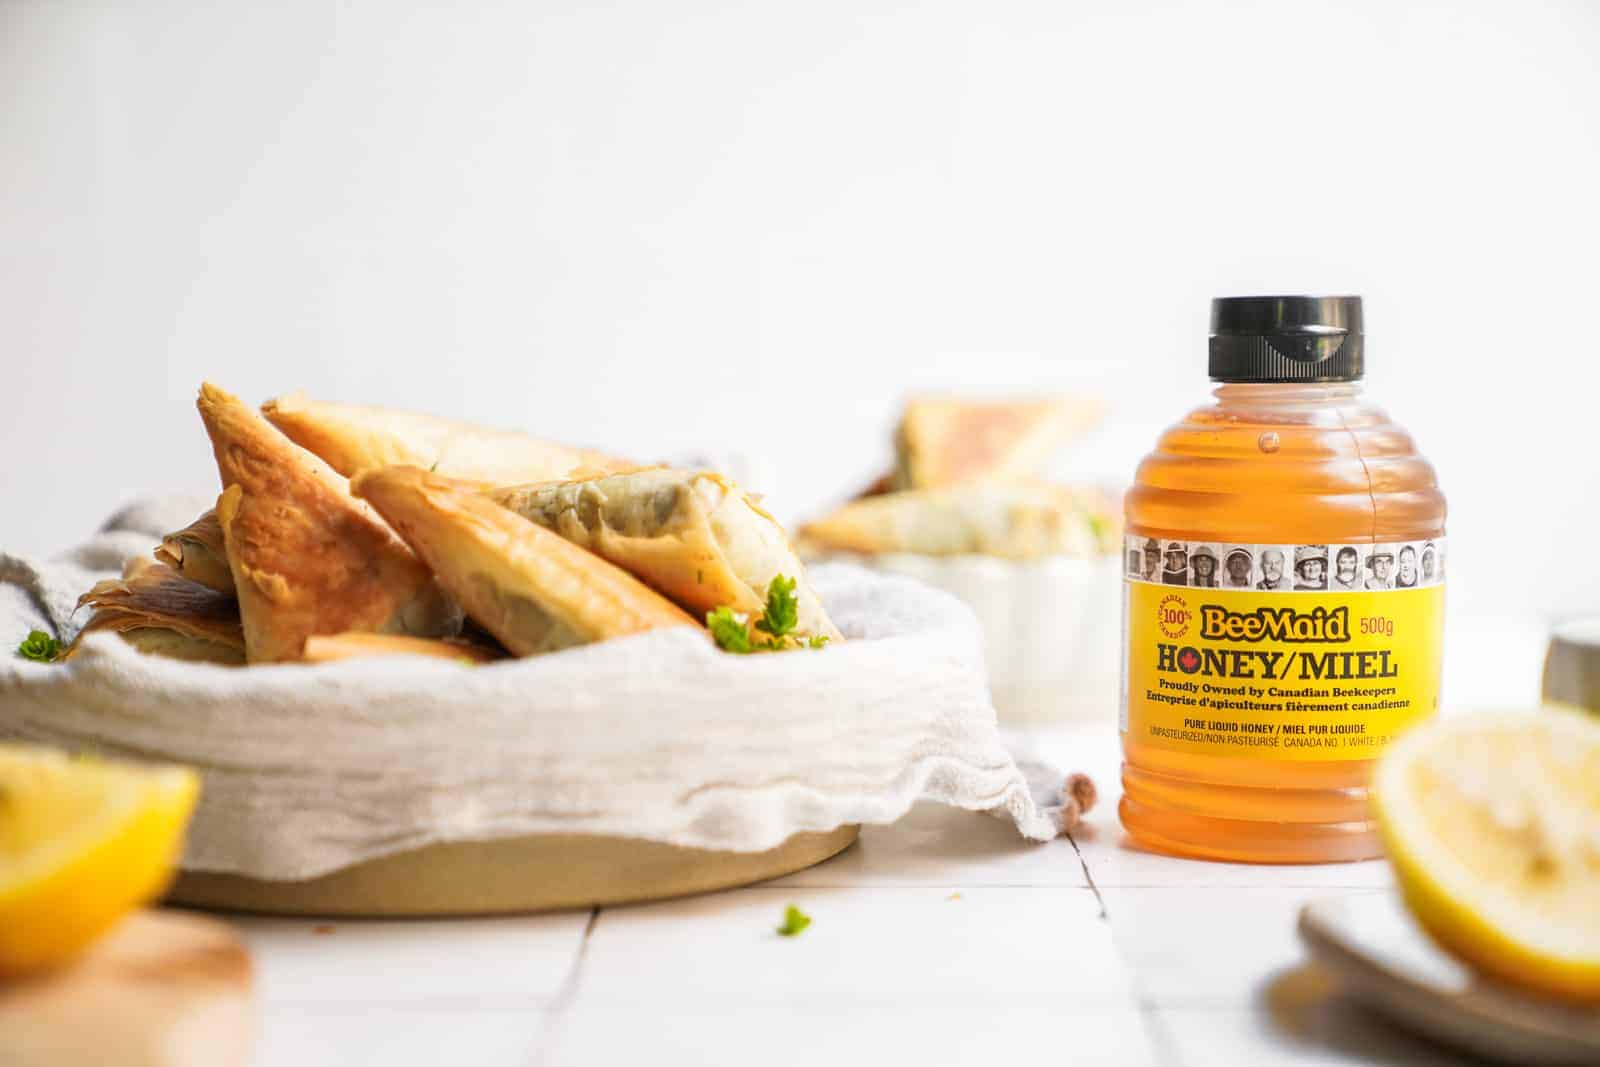 Bottle of honey on countertop surrounded by ingredients and mushroom pastry bites.